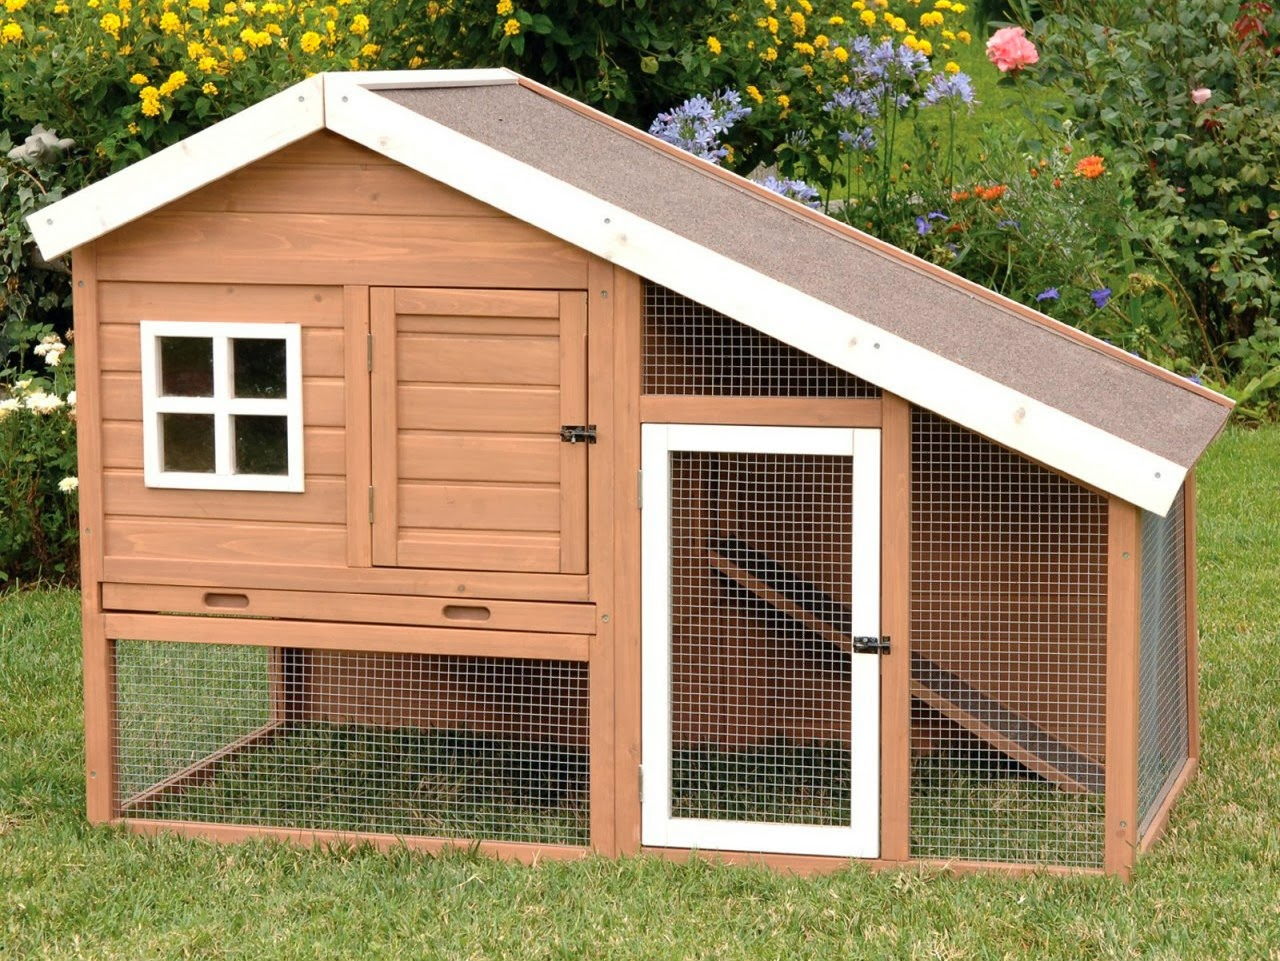 Chicken house plans chicken house designs for Small chicken house plans